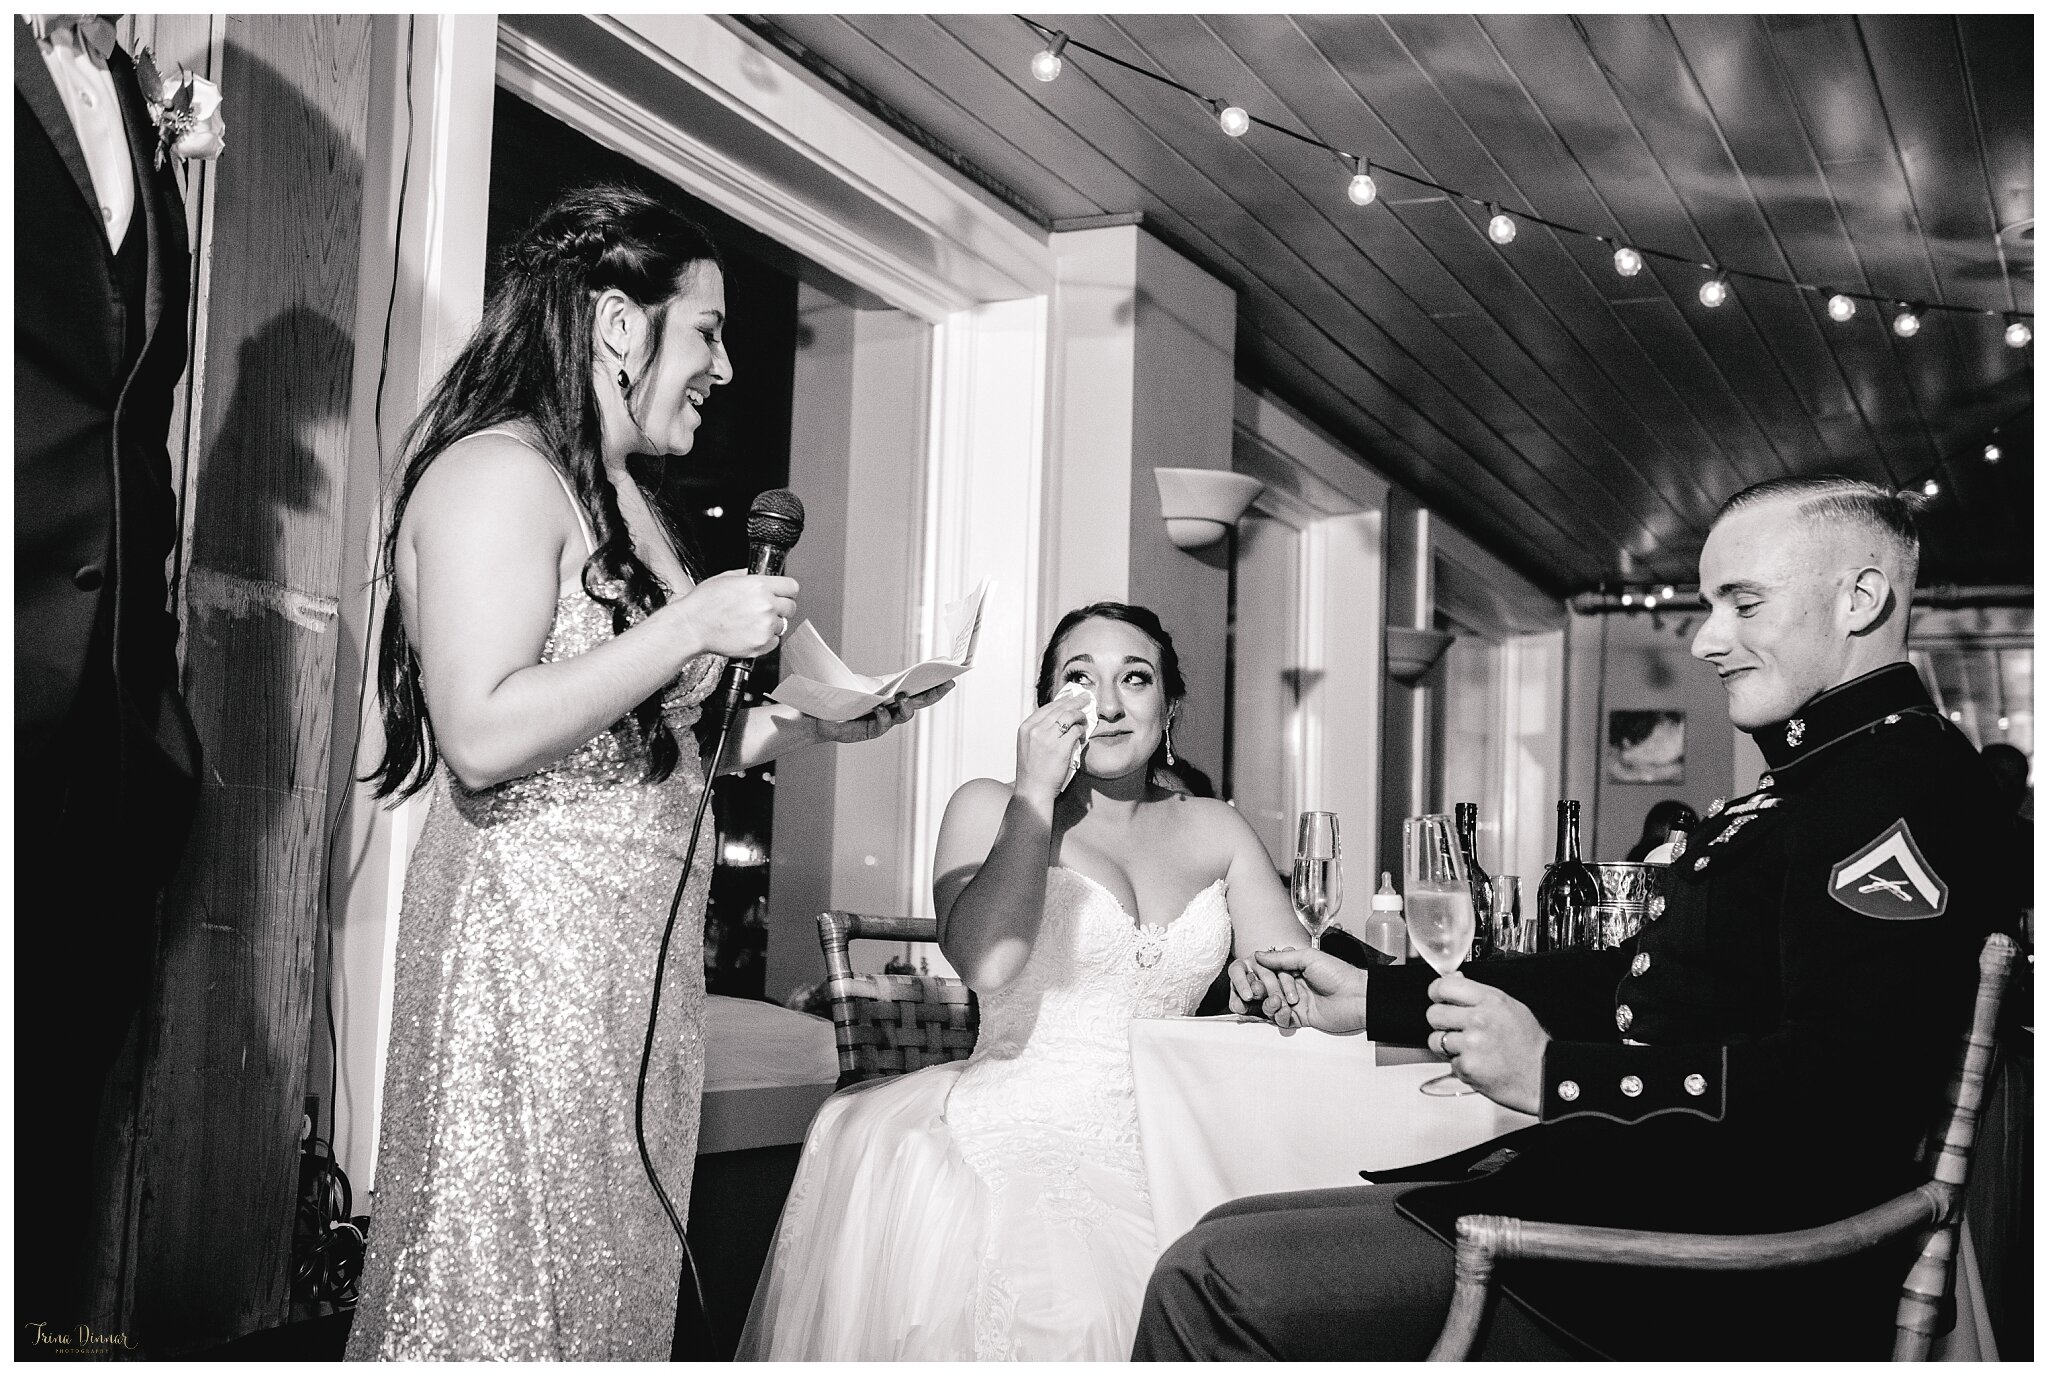 Emotional Wedding Day Speech from Maid of Honor